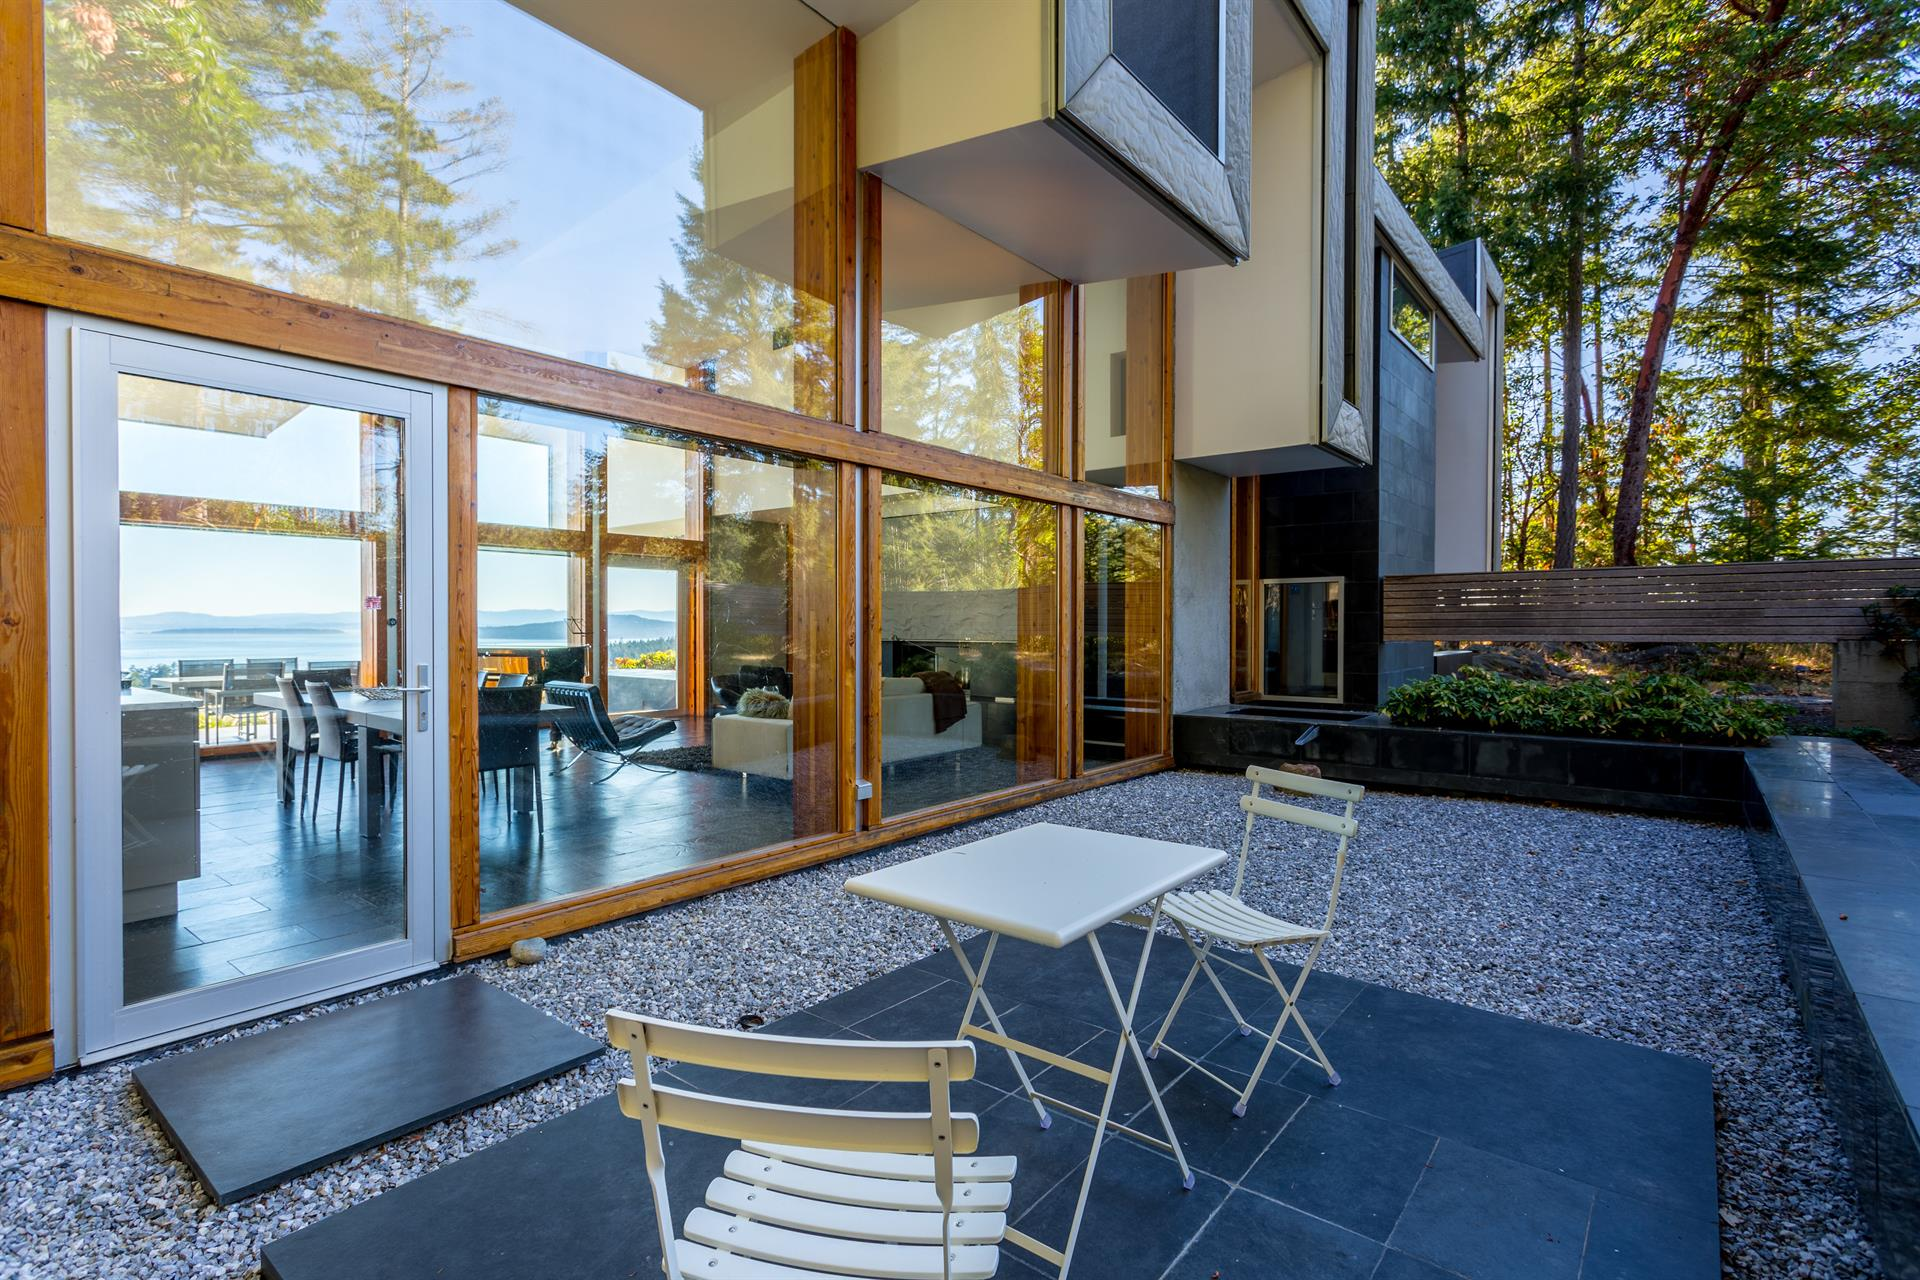 Additional photo for property listing at 9809 Spalding Rd Pender Island, 브리티시 컬럼비아주,캐나다